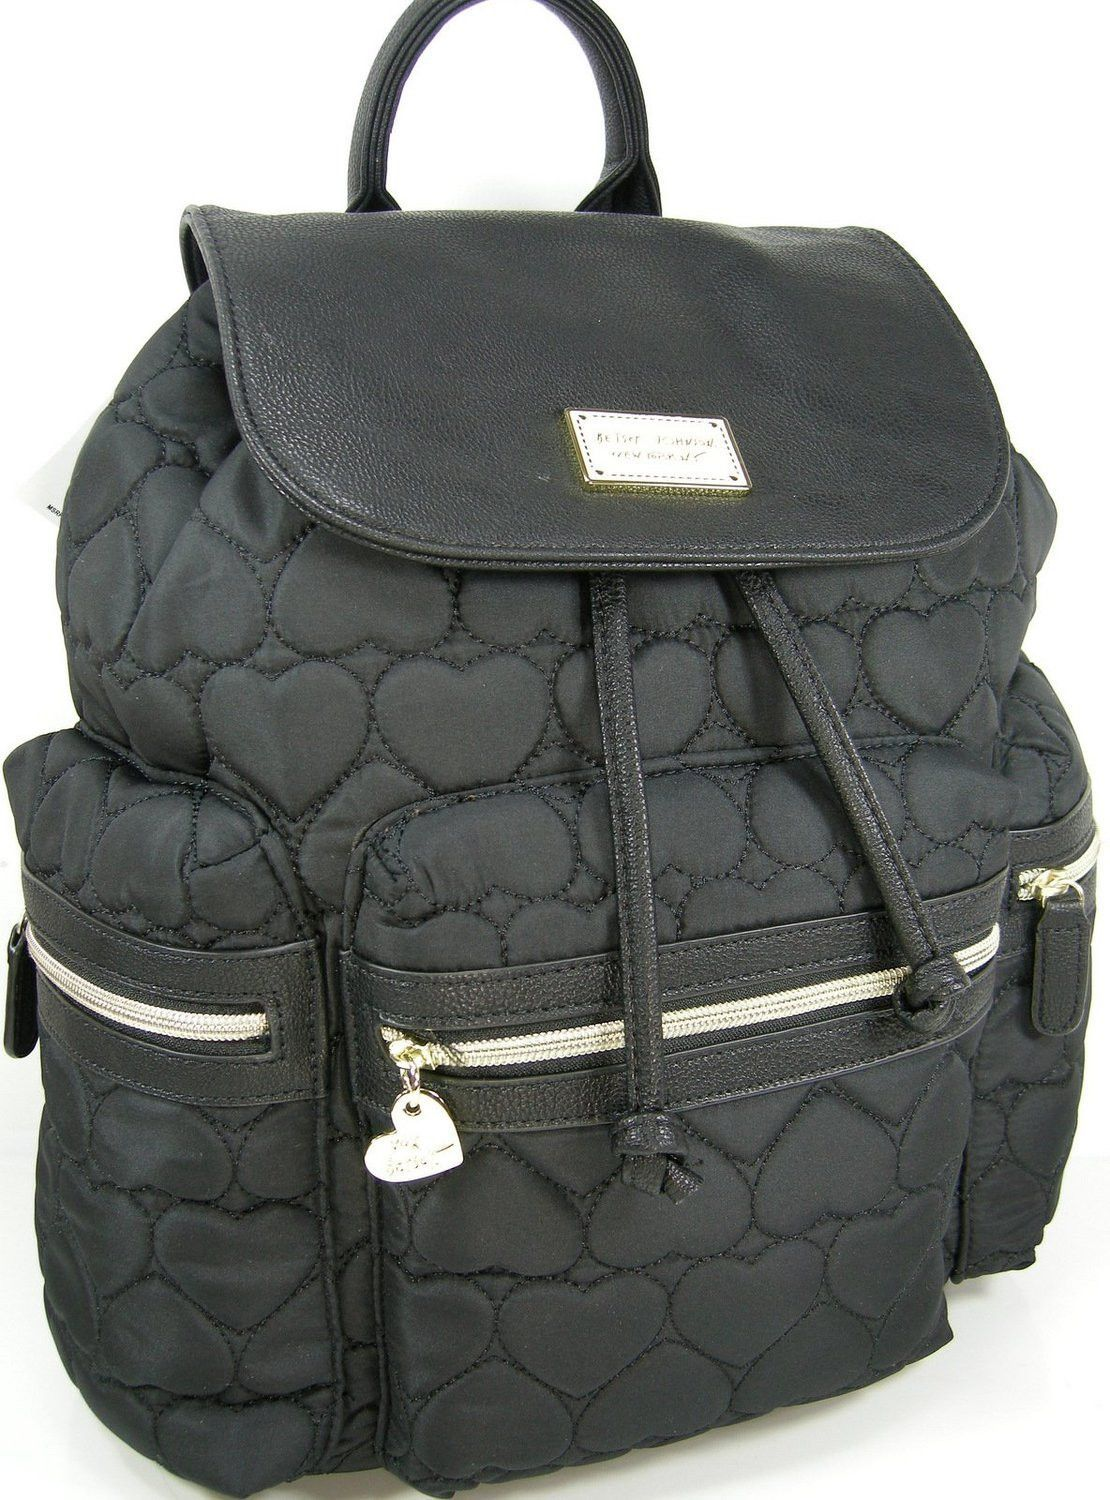 Betsey Johnson BR21875 Puffy Quilted Hearts Logo Flap Backpack in Black 43255641bc824